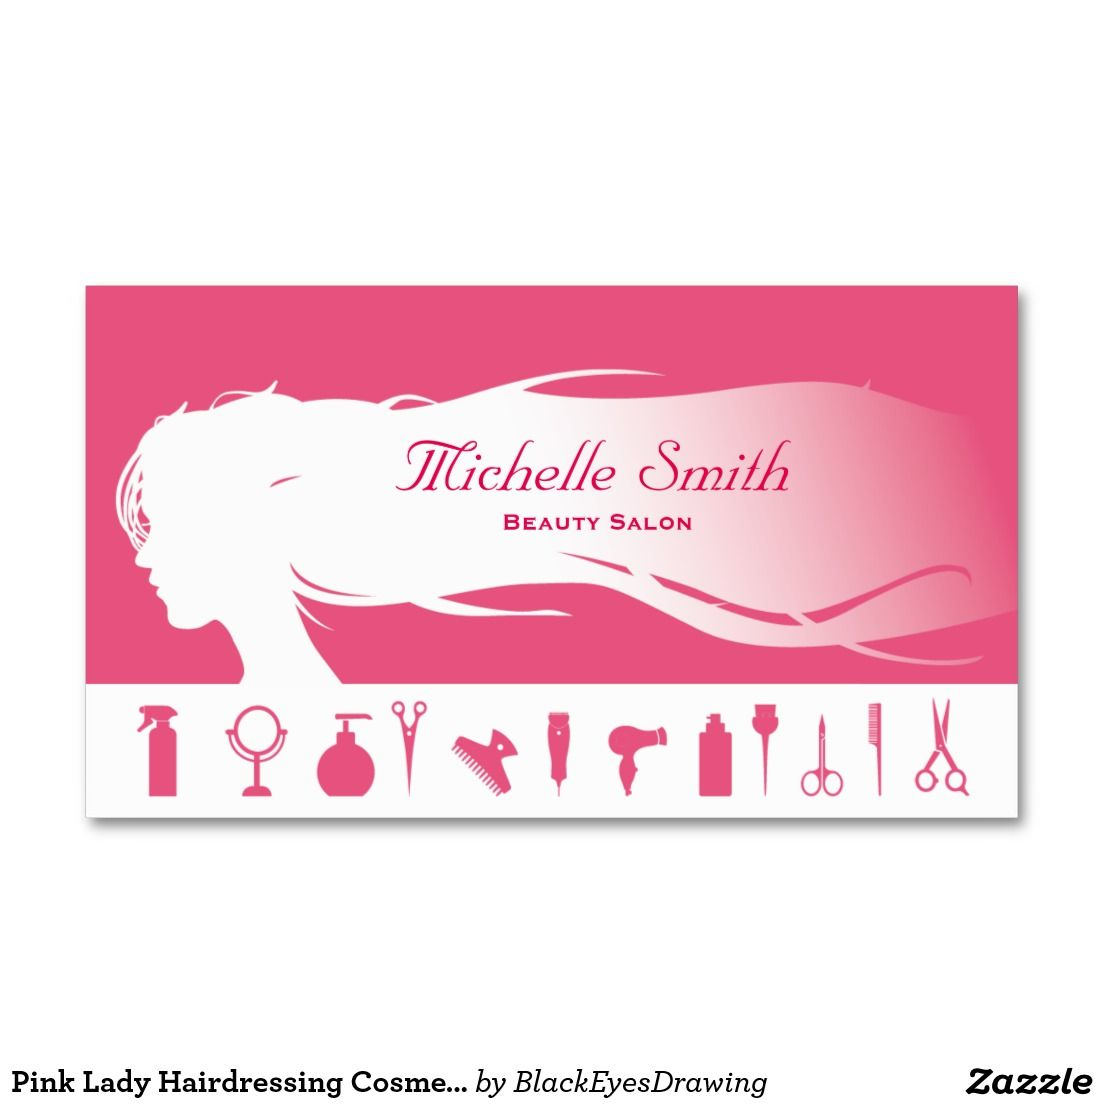 Pink Lady Hairdressing Cosmetics Beauty Salon Business Card ...